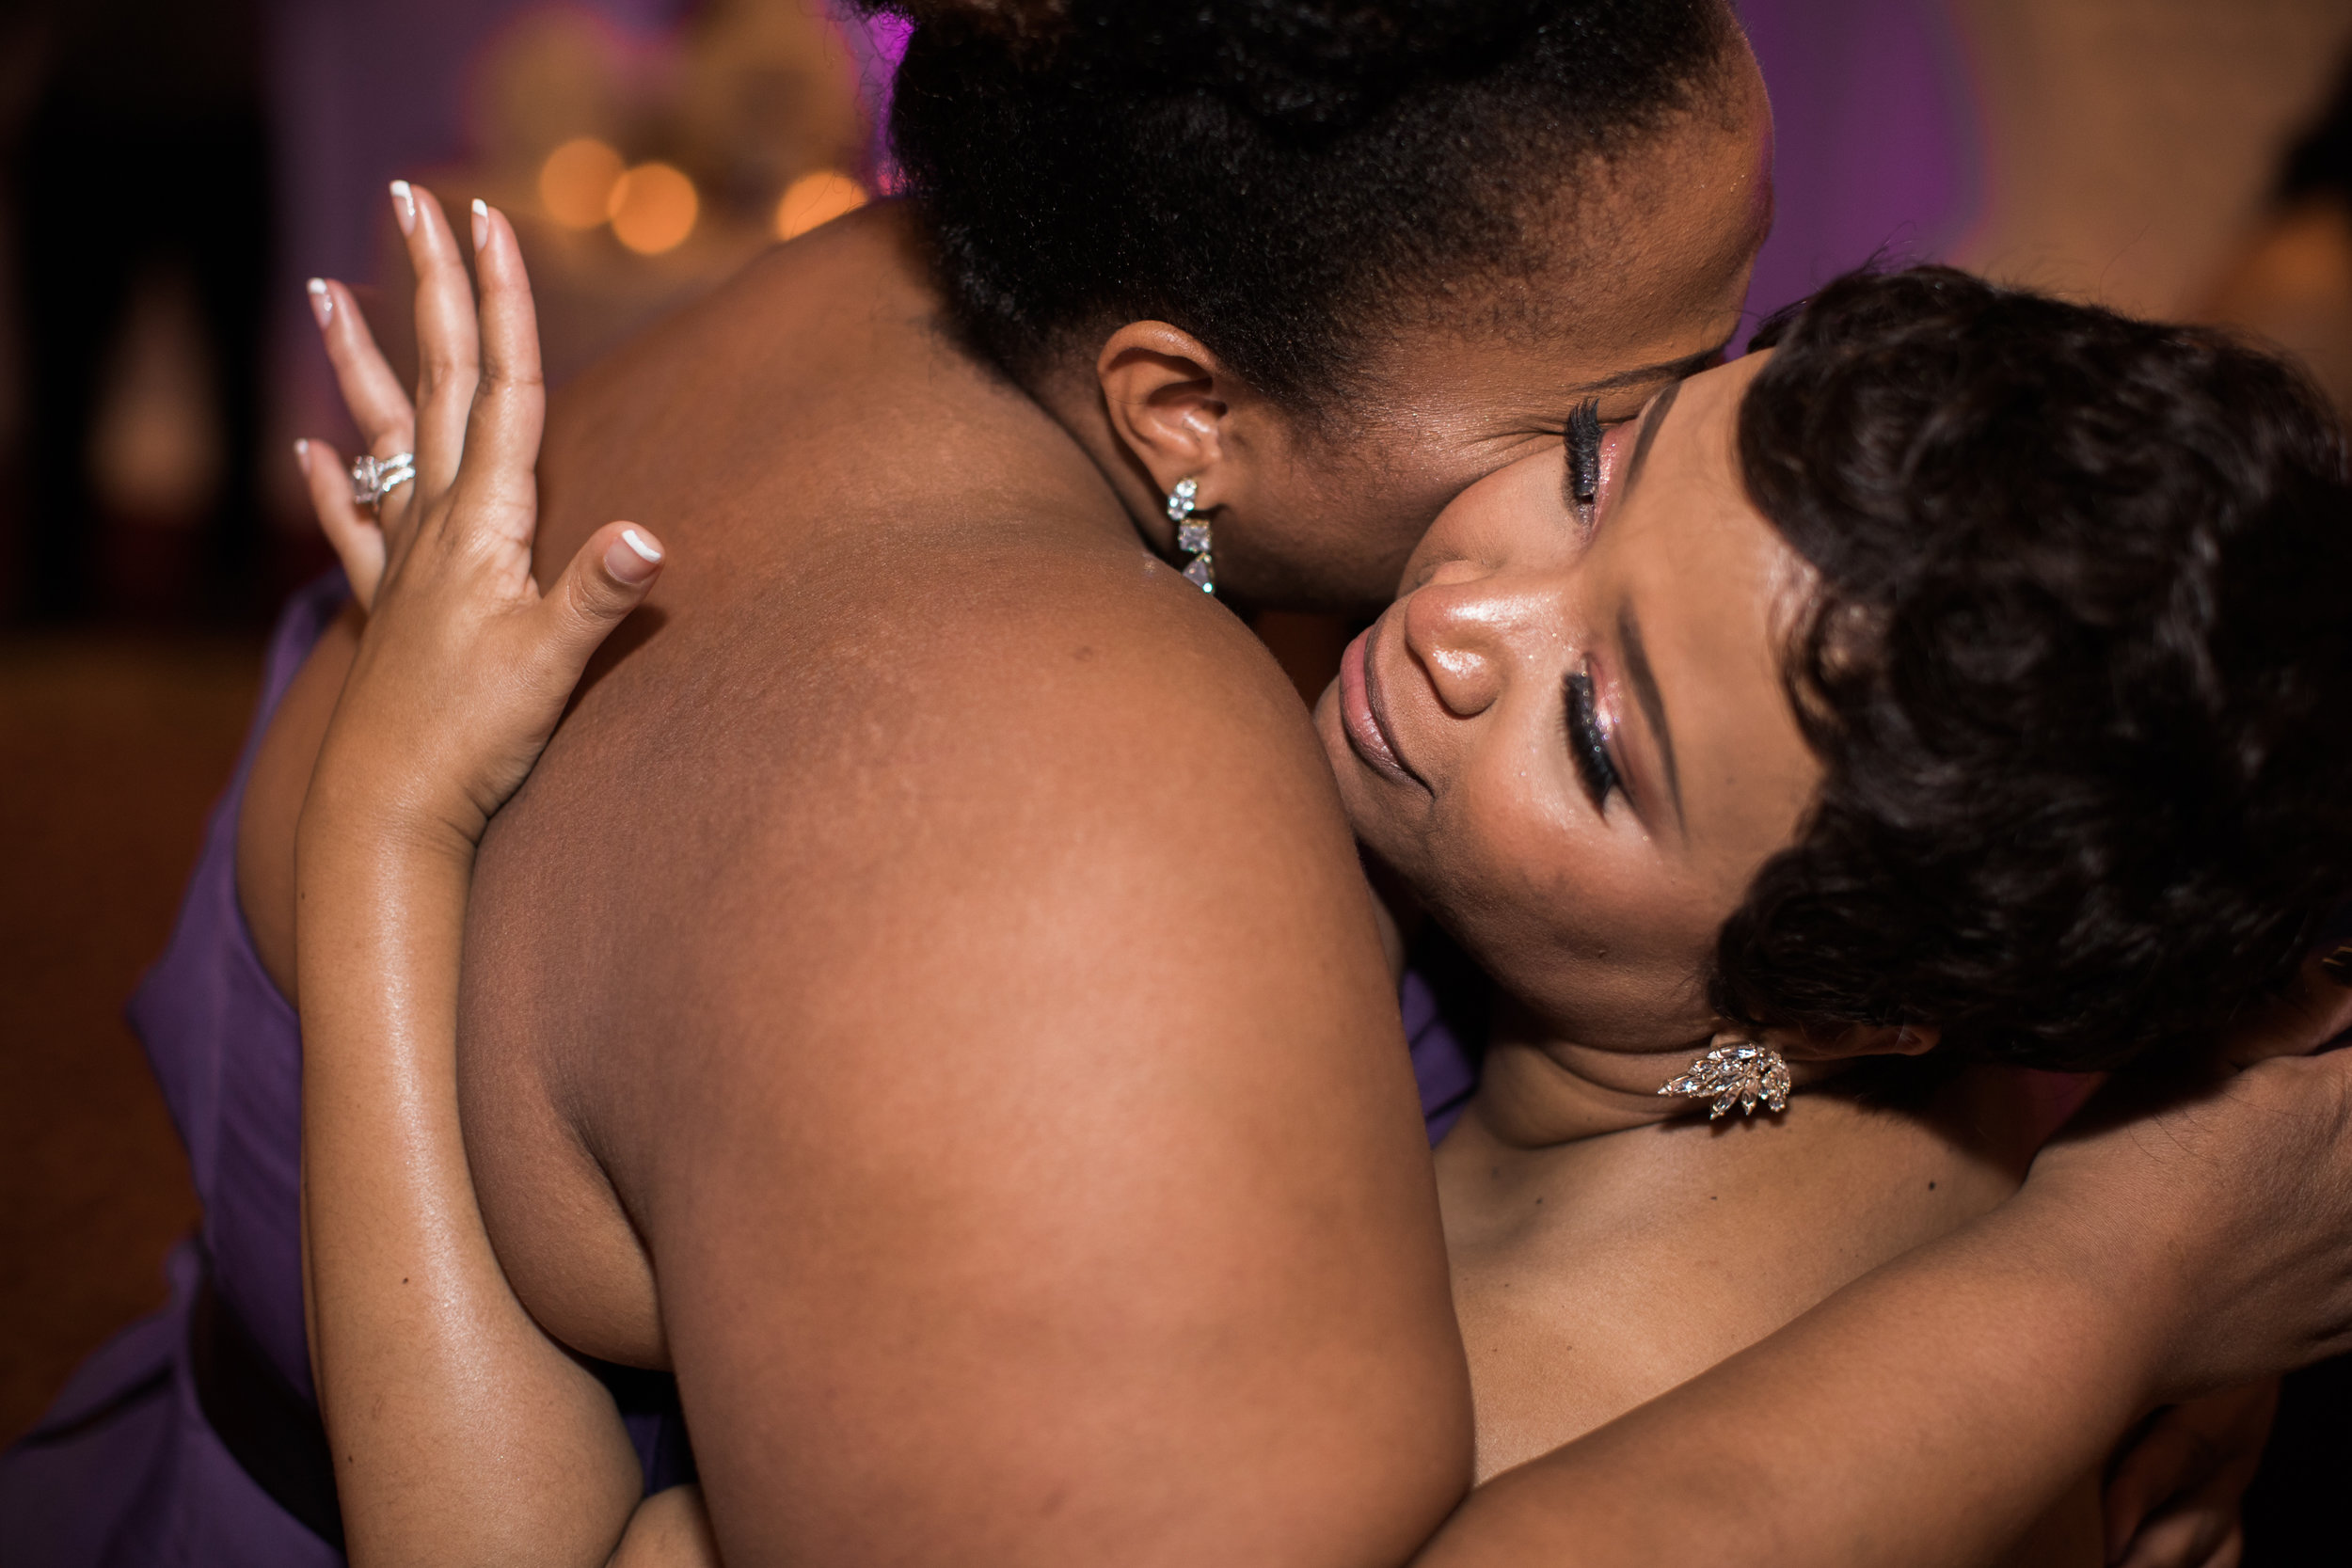 Best Classic Black Bride at The Grand Baltimore Maryland Husband and Wife Wedding Photographers Megapixels Media (86 of 98).jpg